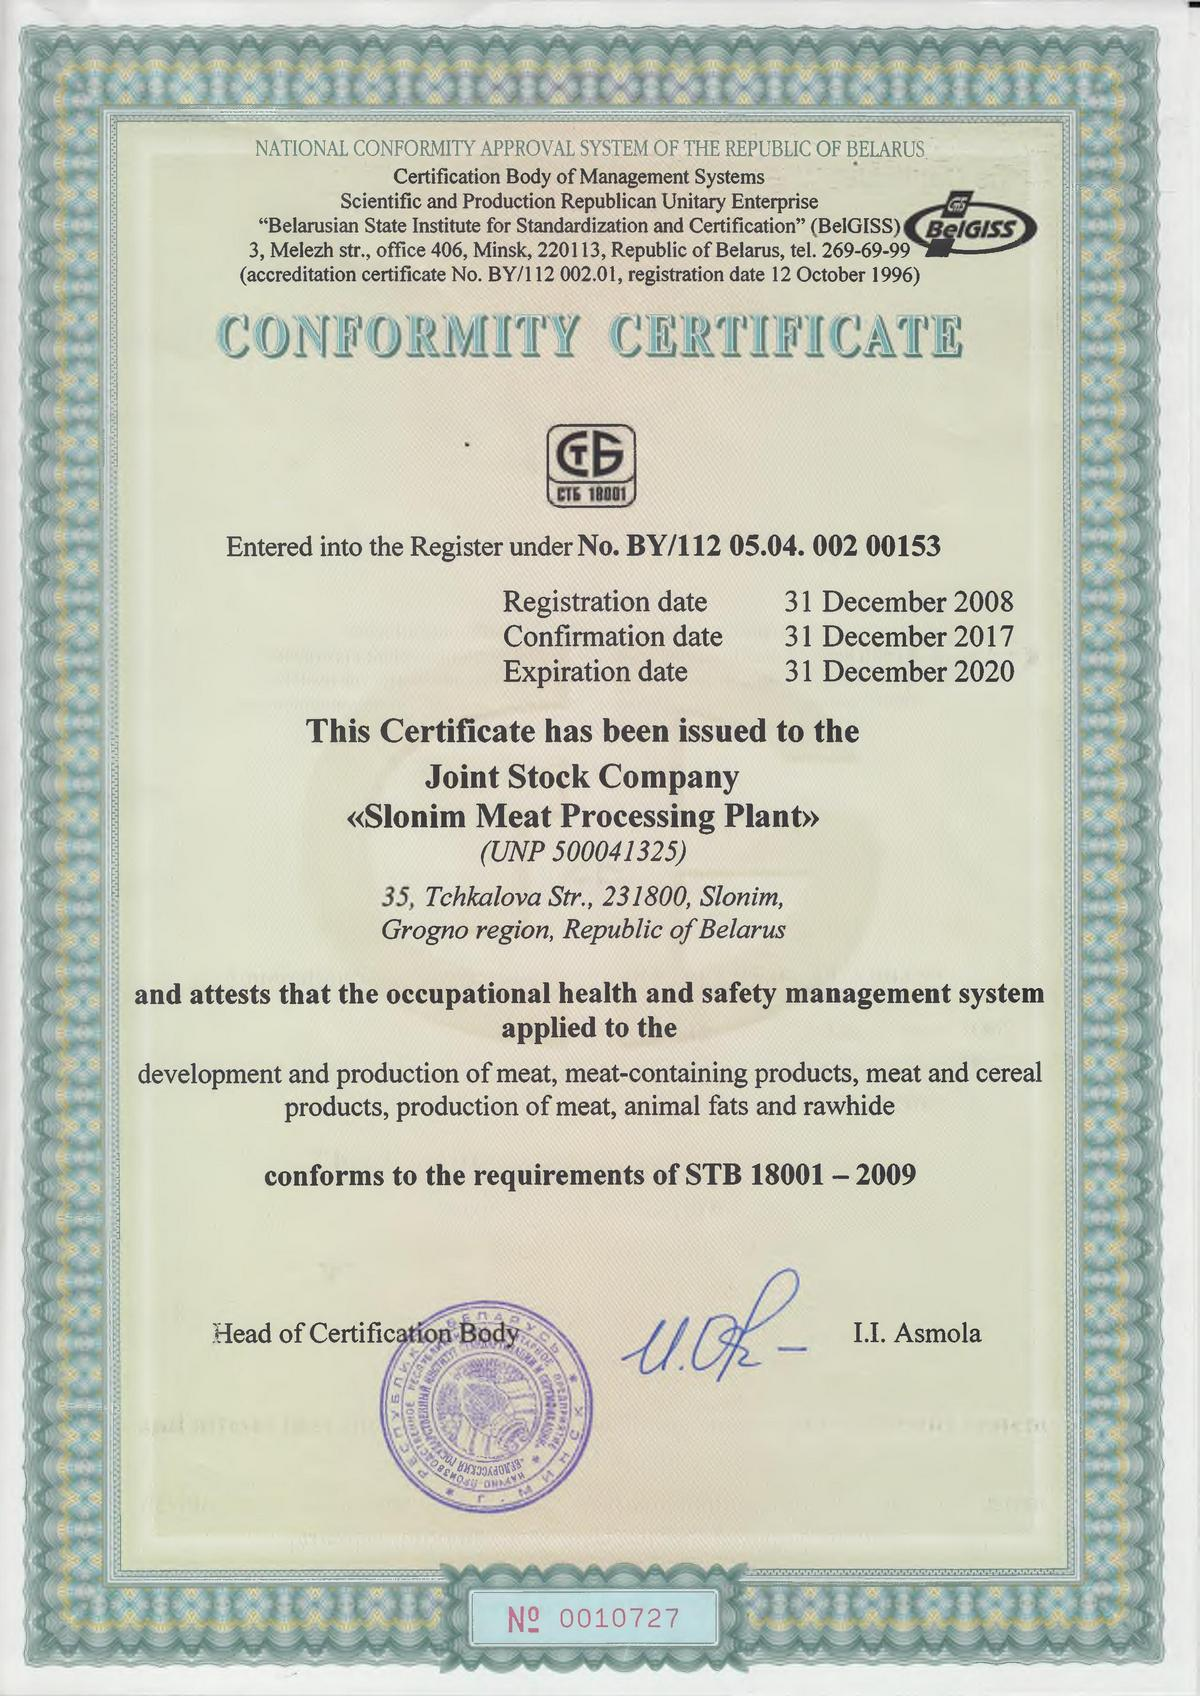 Conformity Certificate to the requirements of STB 18001-2009